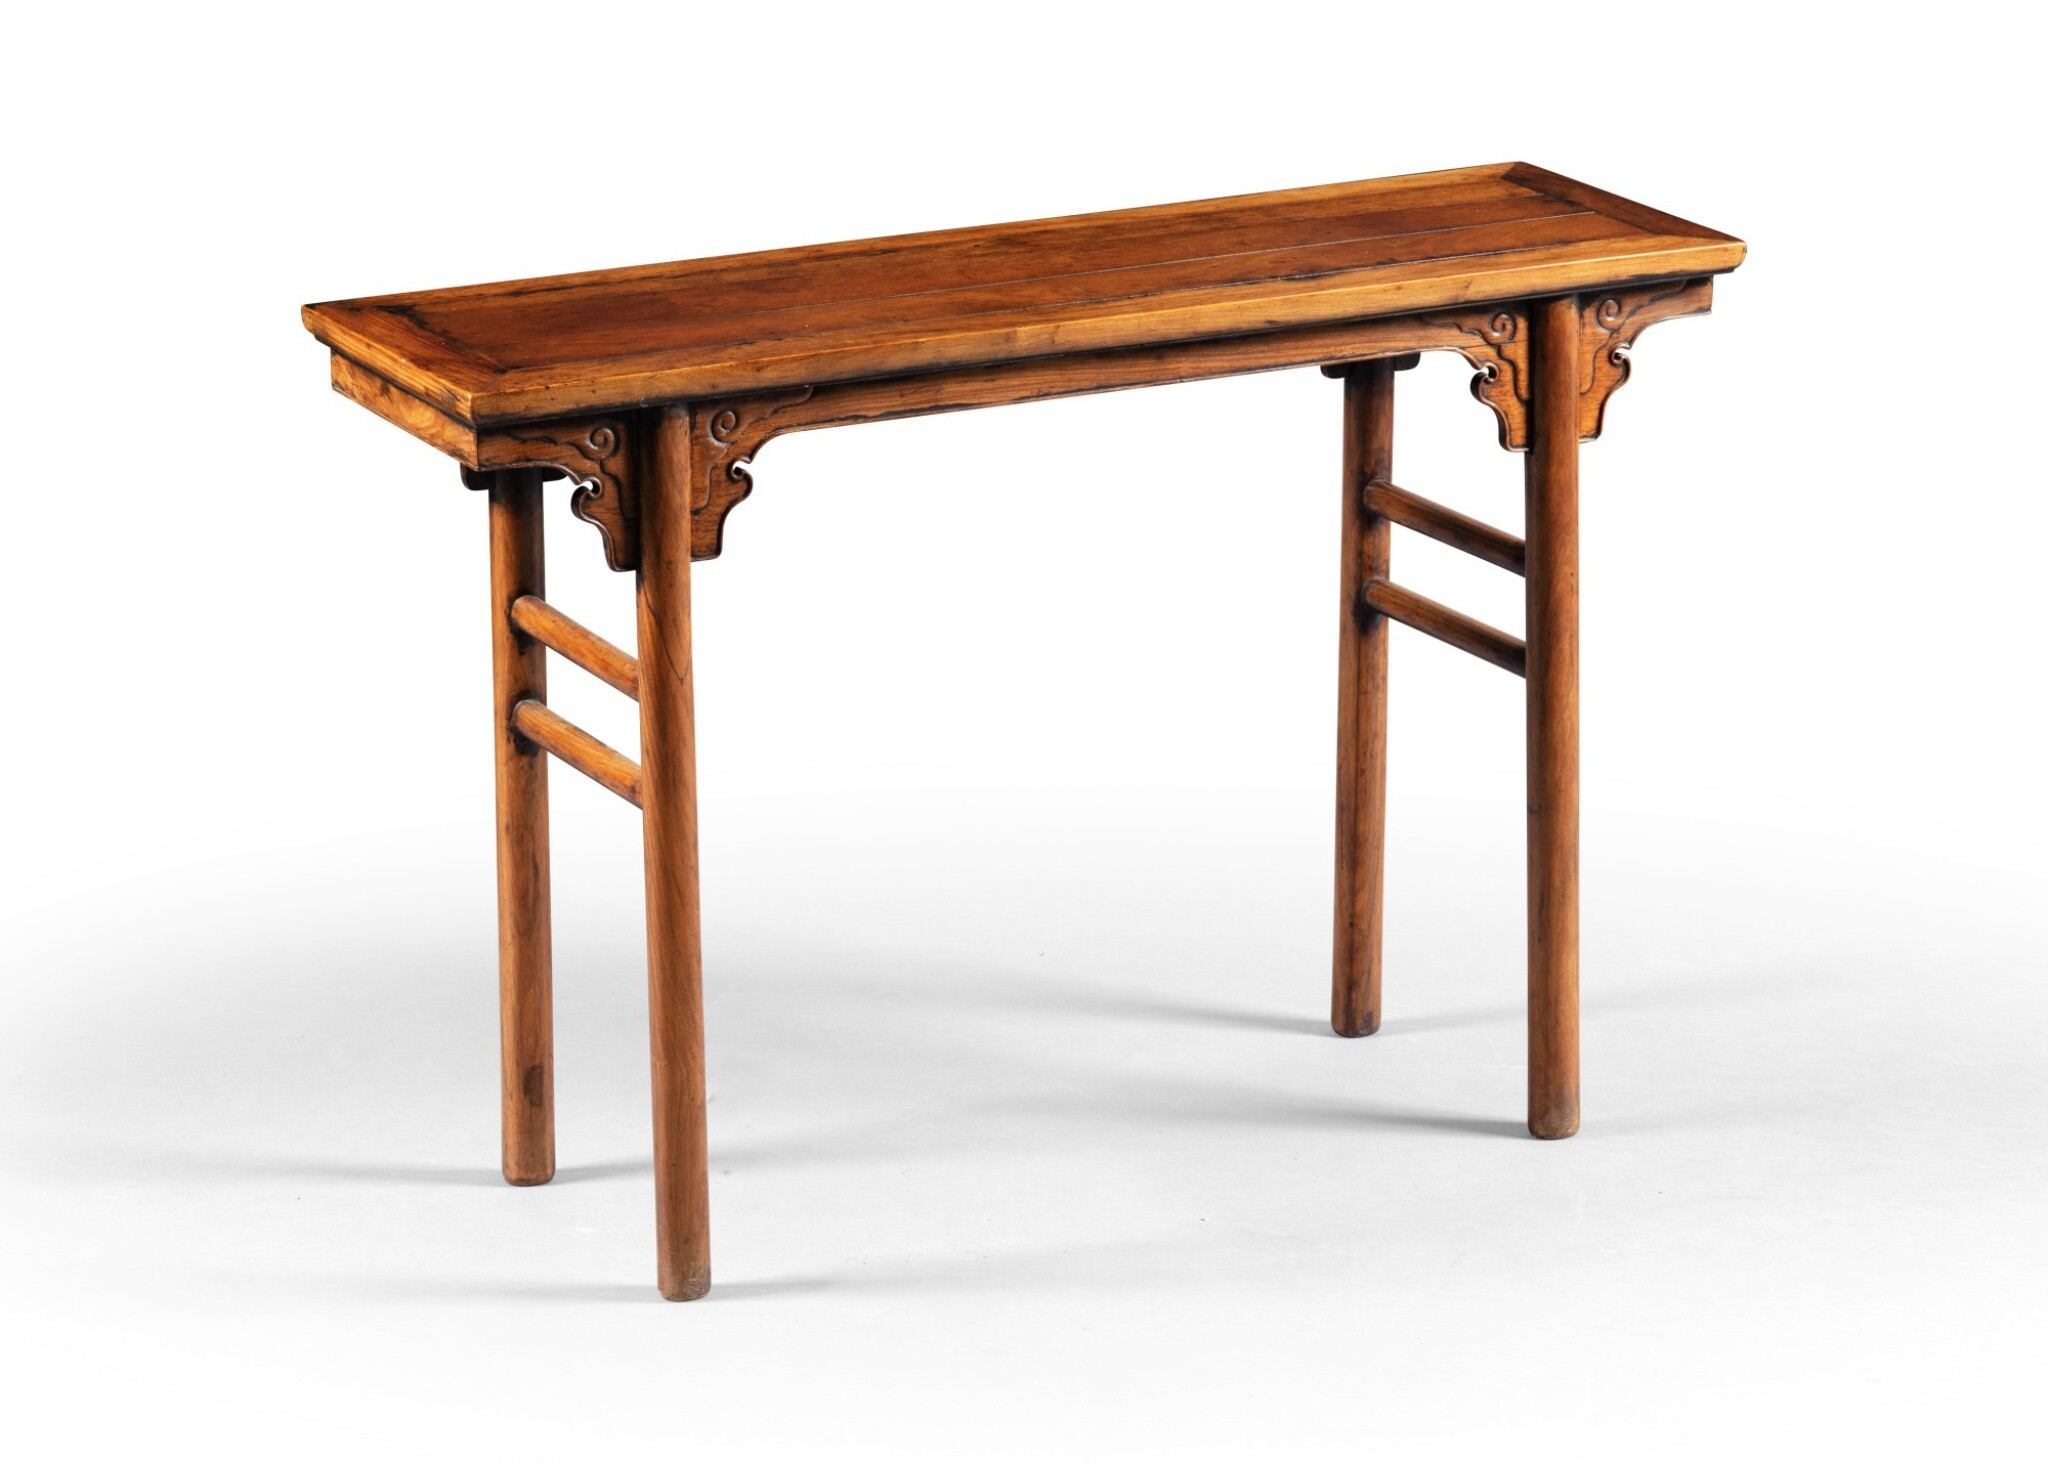 View 1 of Lot 201. Table en palissandre formant console double face, pingtouan Dynastie Qing, XIXE siècle   清十九世紀 花梨木平頭案   A small huali recessed-leg table, pingtouan, Qing Dynasty, 19th century.